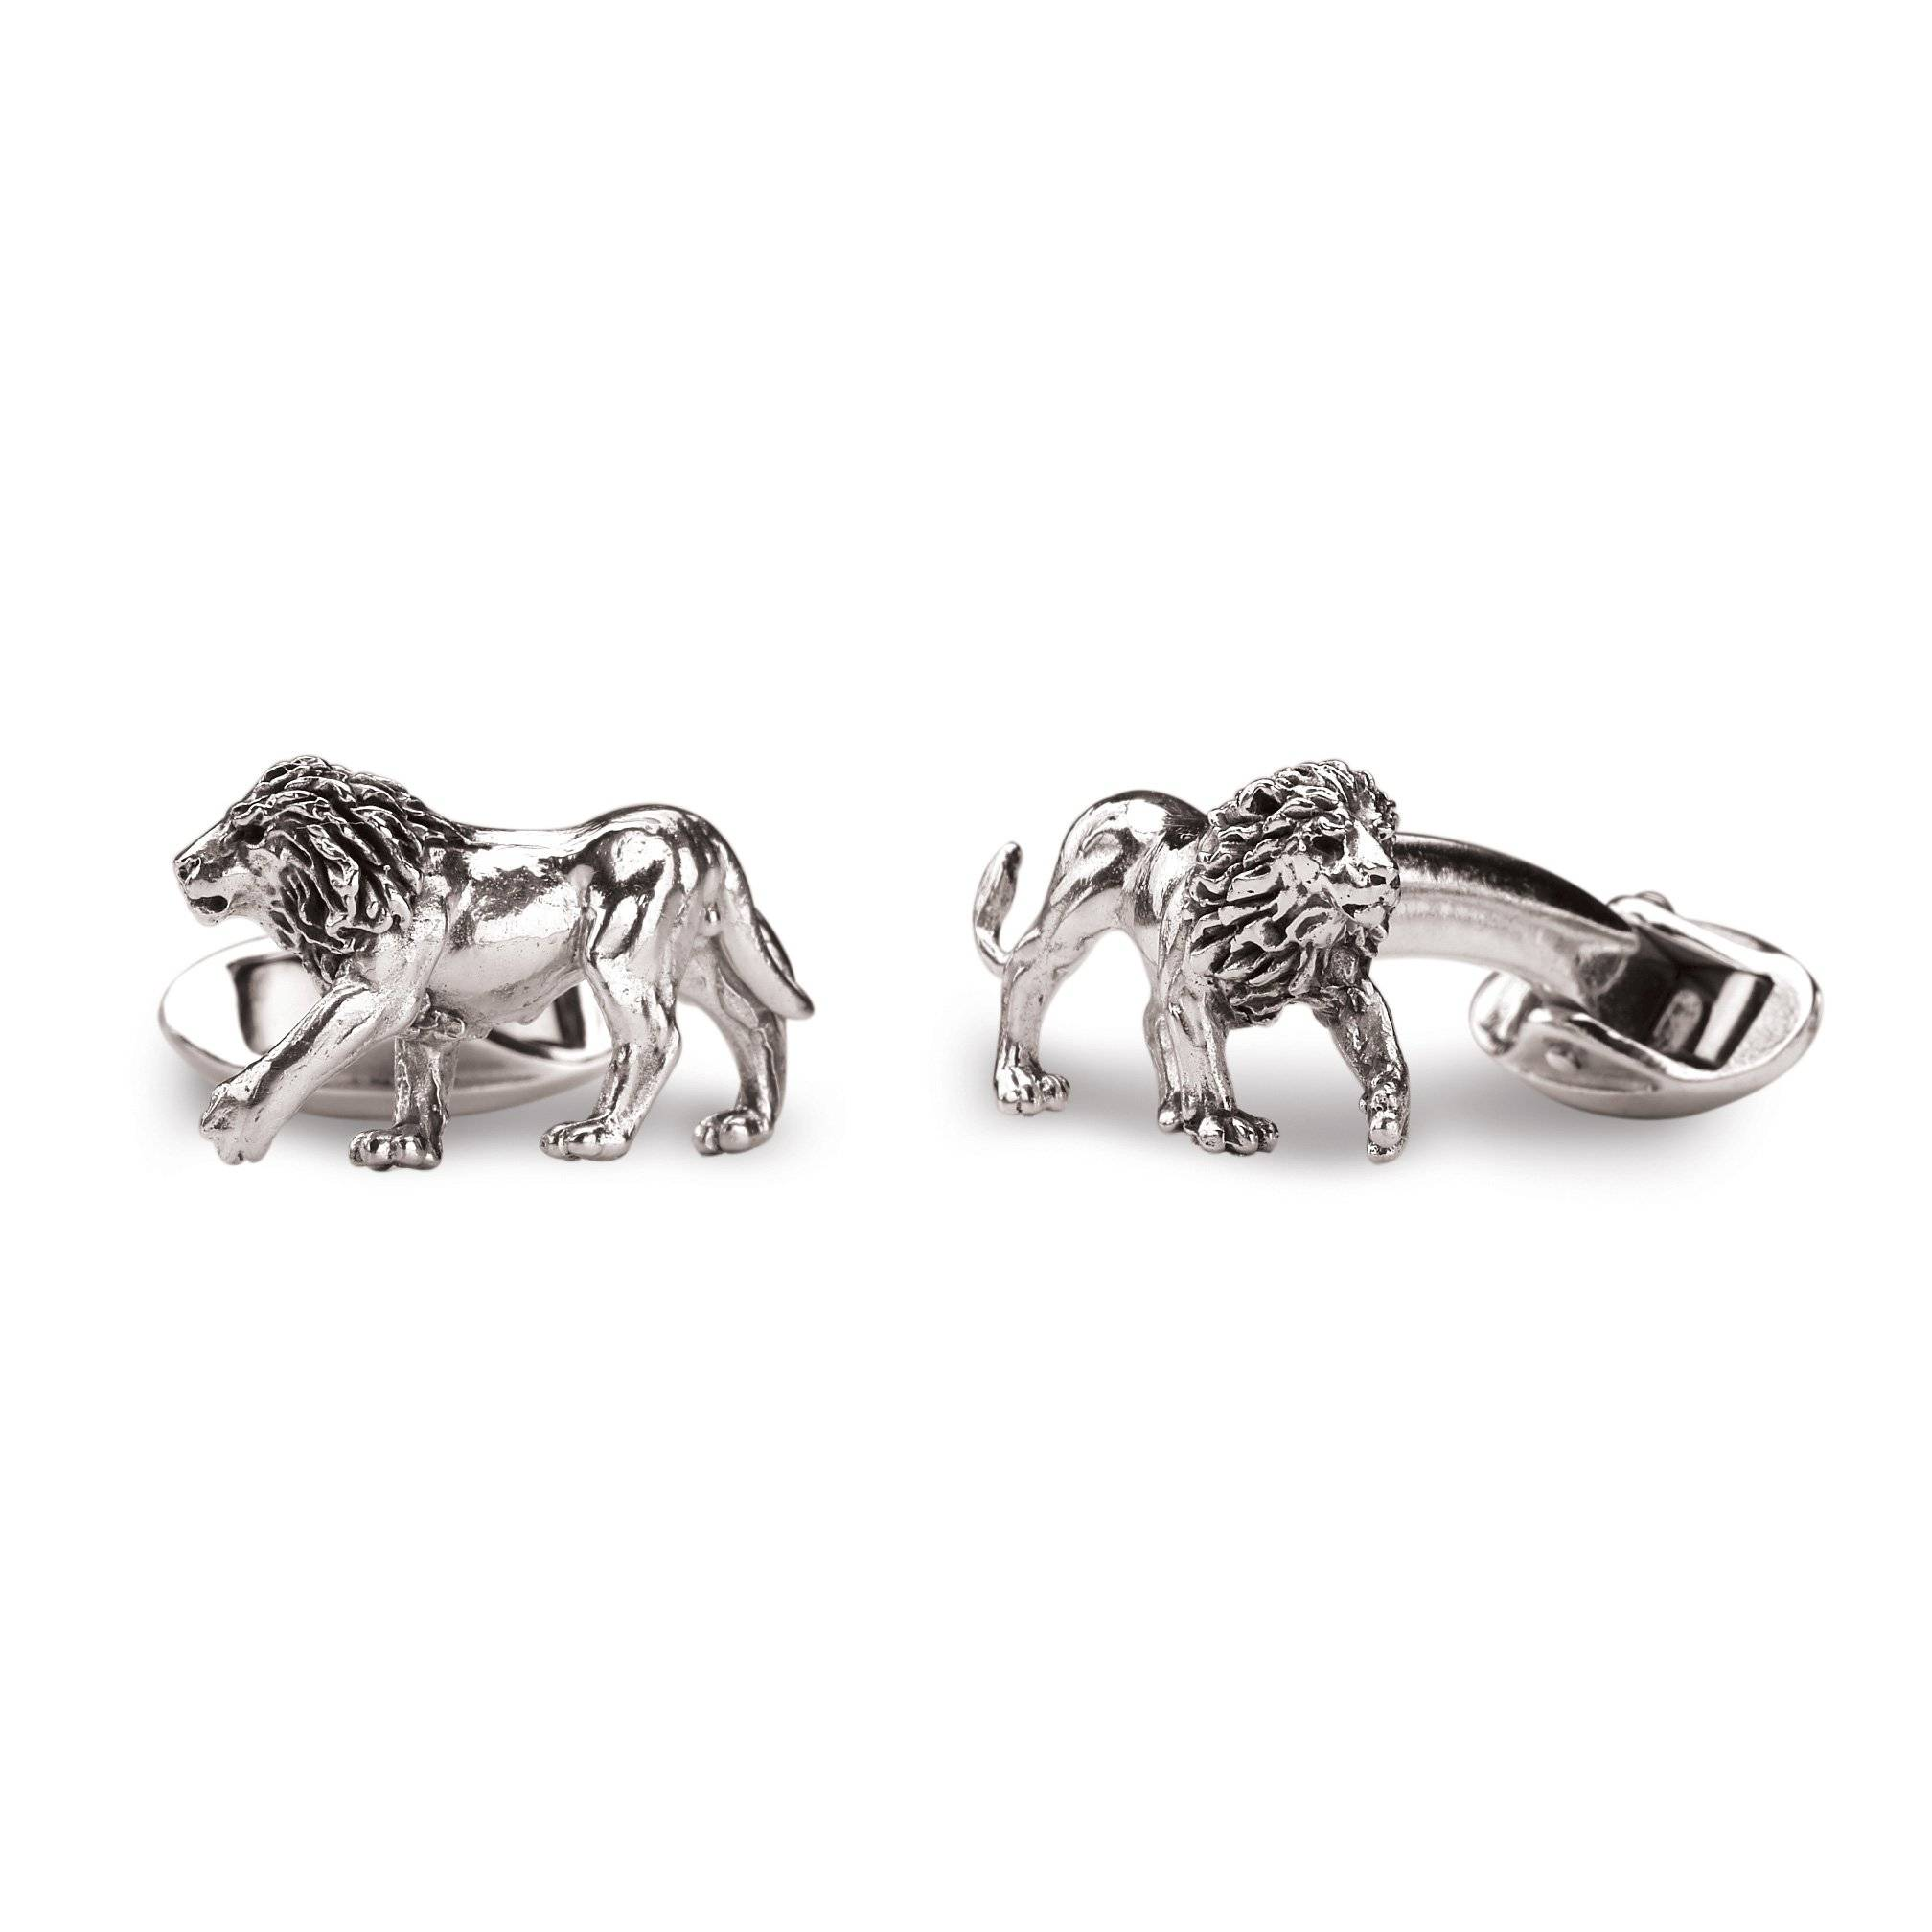 Shop Patrick Mavros Cufflinks